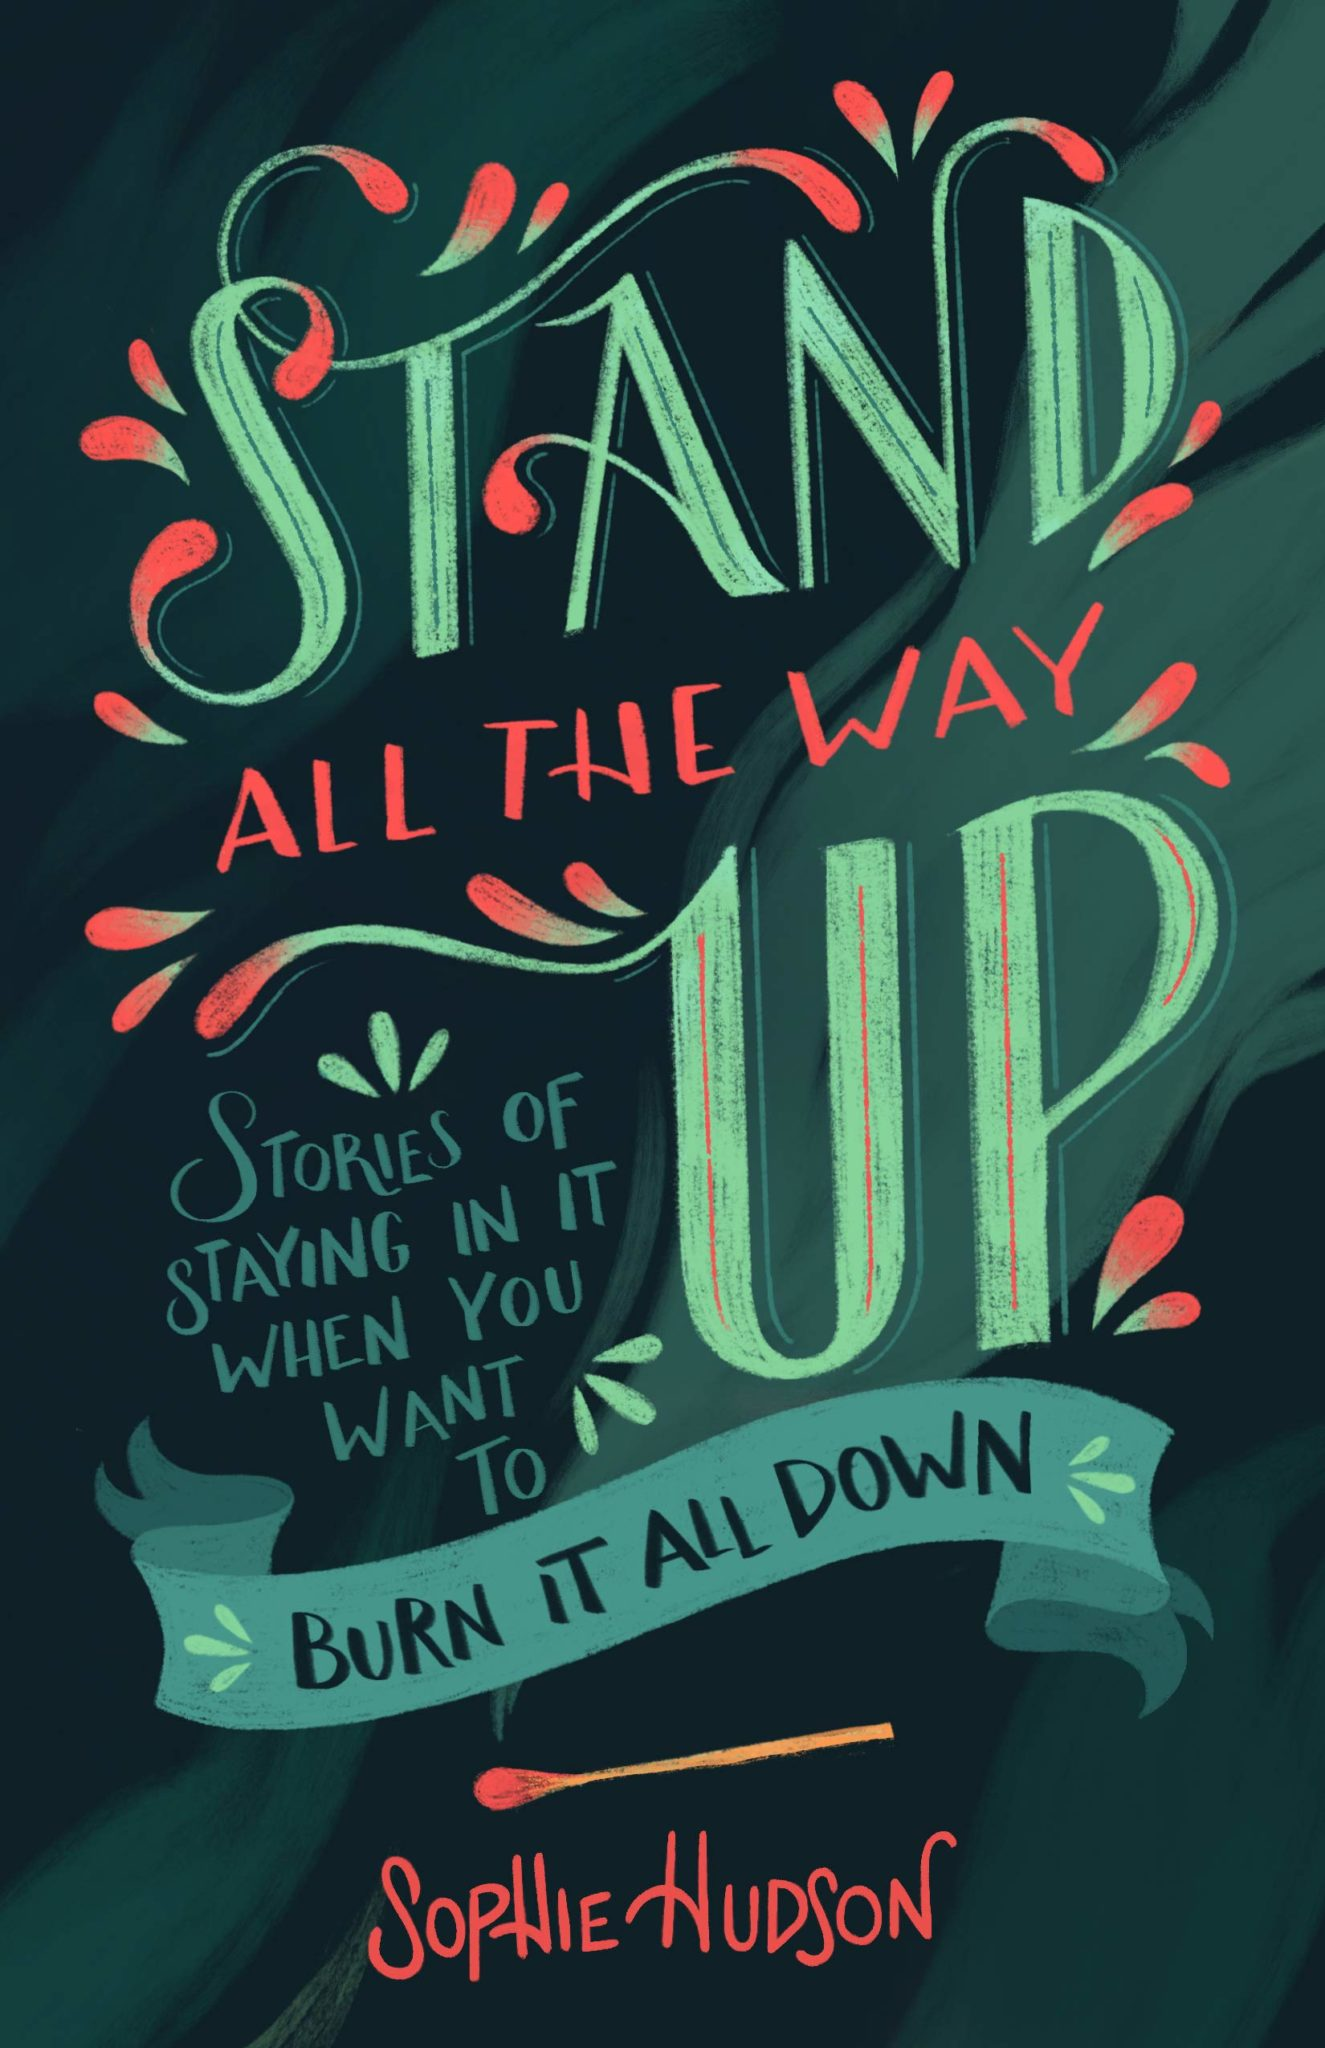 "Author Sophie Hudson brings humor, sass and spiritual insight to ""Stand All the Way Up,"" her new book on standing strong when life gets hard"